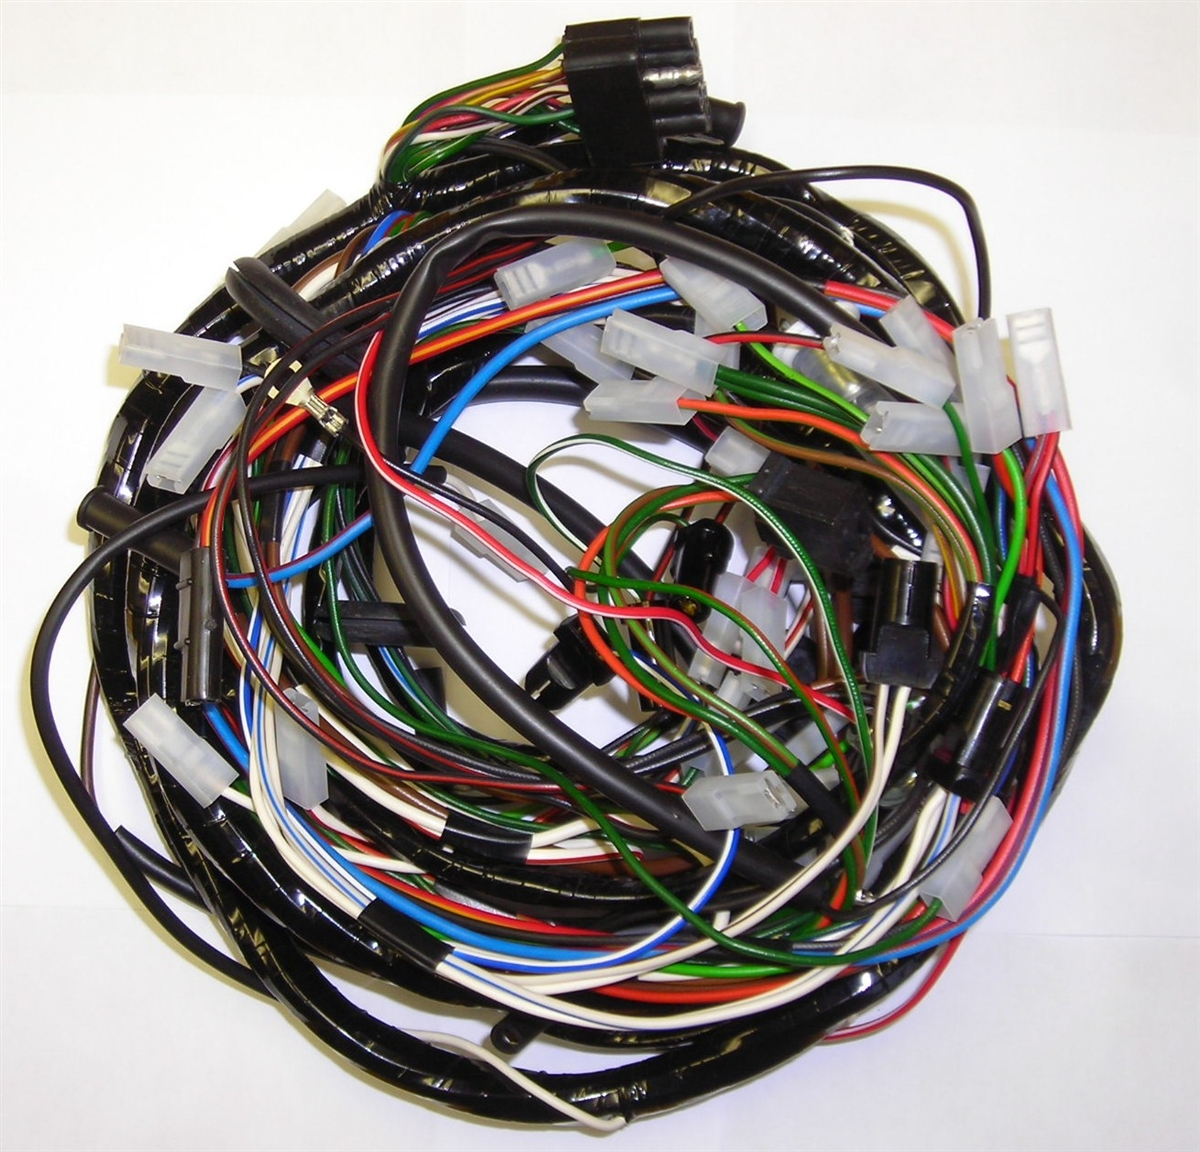 land rover series 3 wiring loom diagram 39 wiring auto electrical for a 1997 land rover discovery wiring-diagram land rover series 3 wiring loom diagram 39 wiring